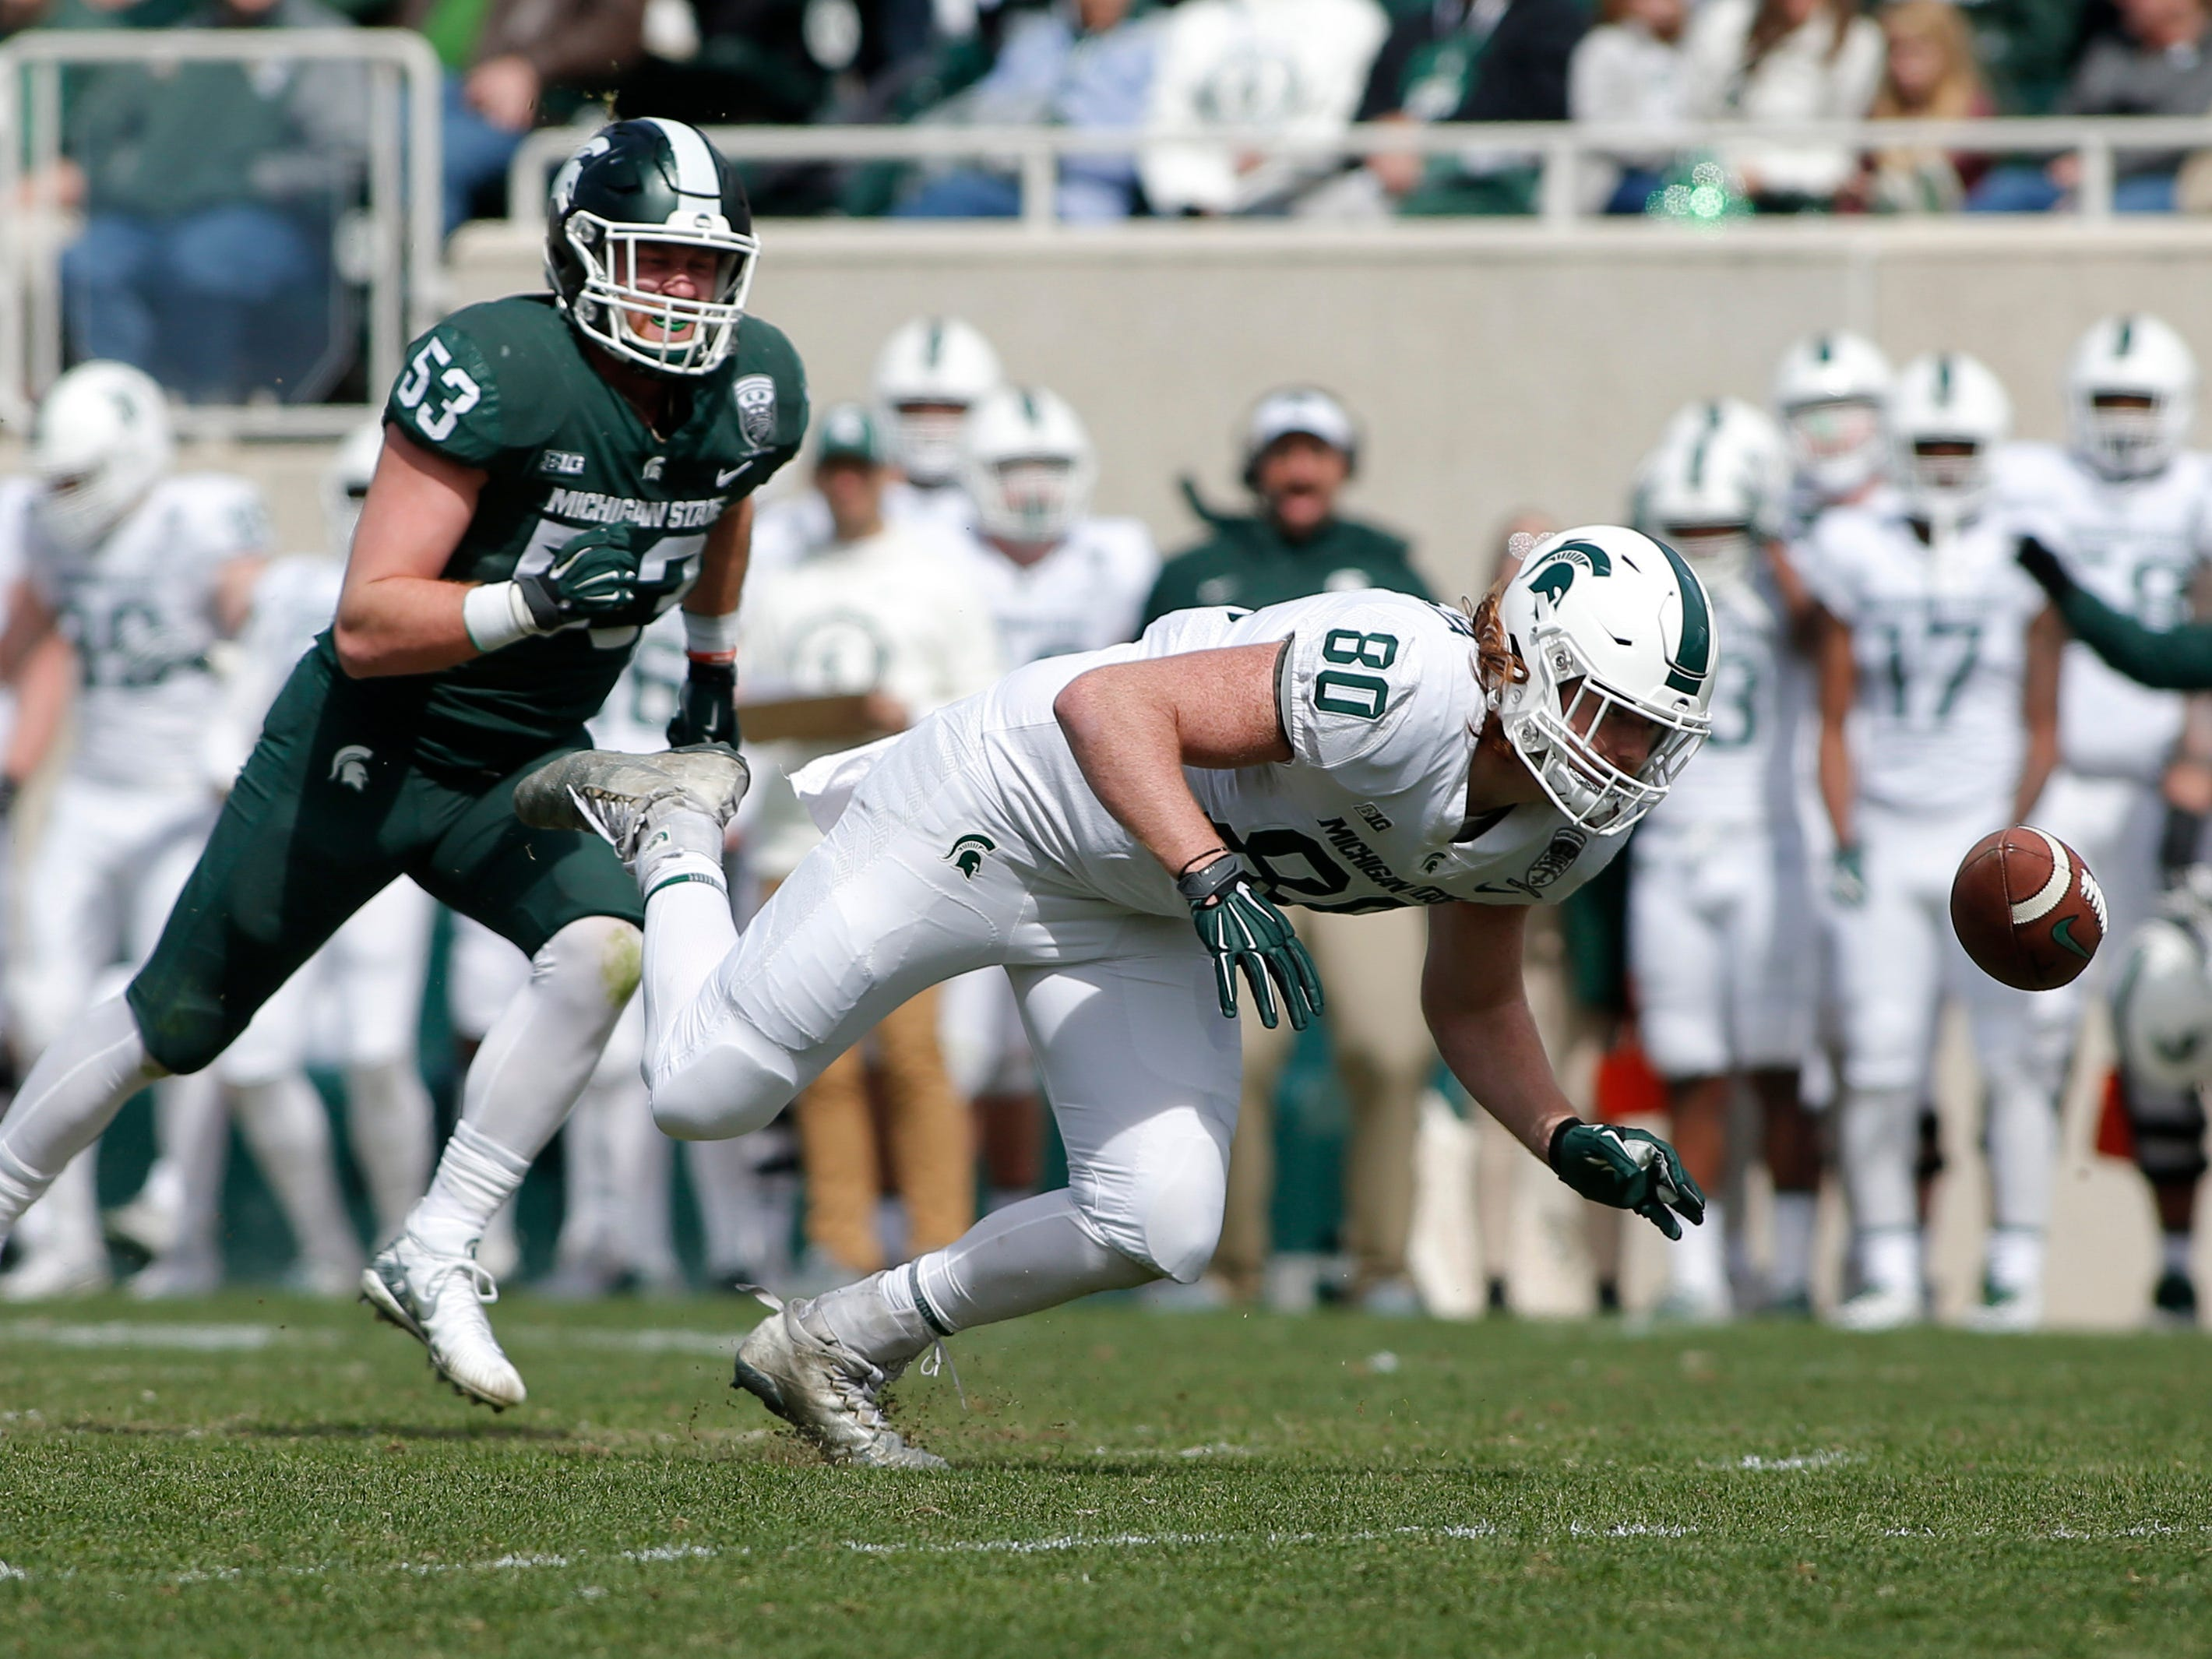 Michigan State tight end Matt Seybert, right, tries unsuccessfully to pull in the ball on a pass reception against linebacker Peter Fisk (53) during an NCAA college football spring scrimmage game, Saturday, April 13, 2019, in East Lansing, Mich. (AP Photo/Al Goldis)